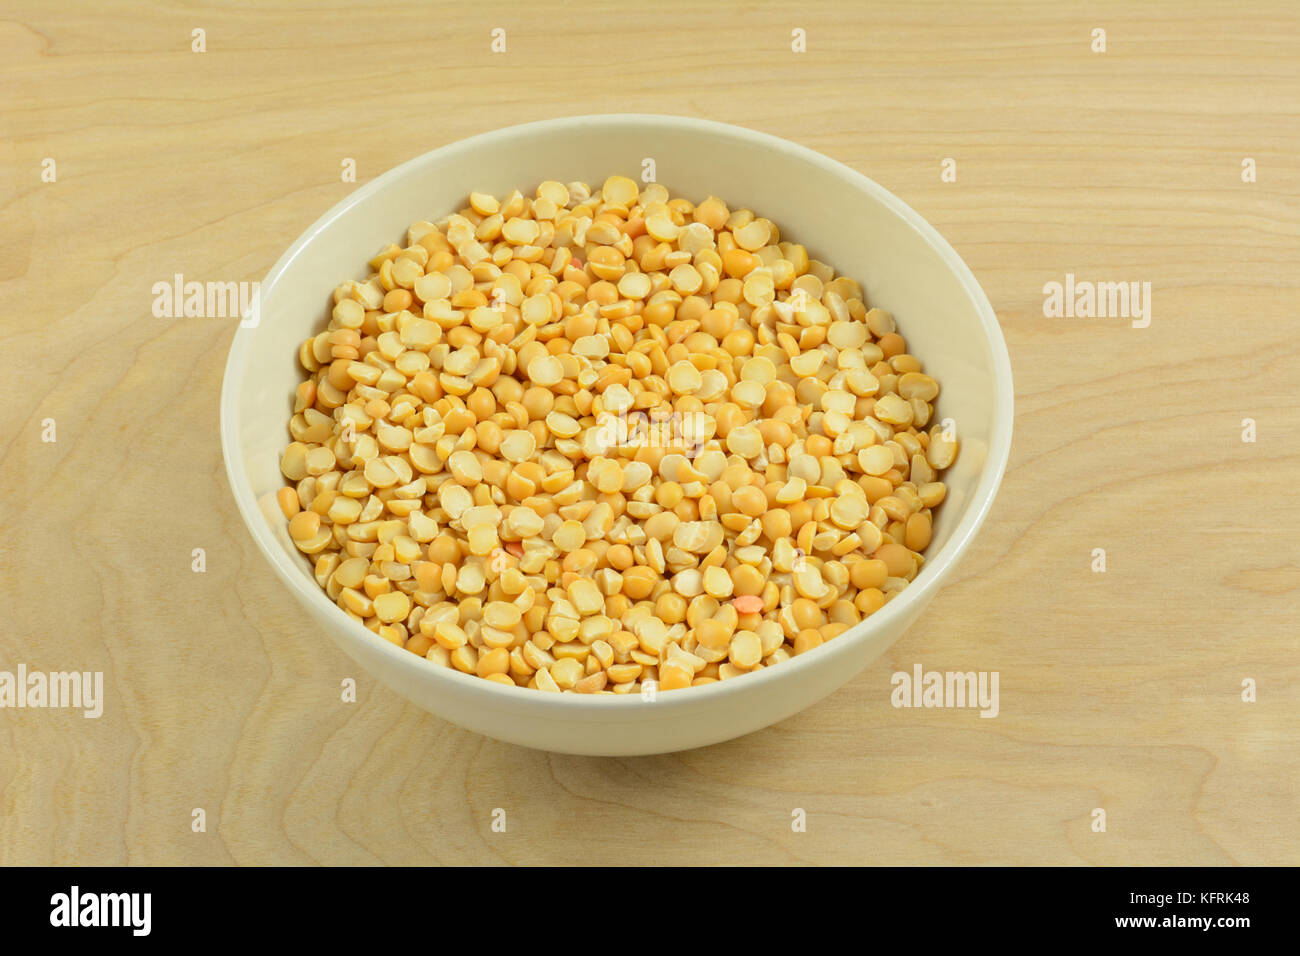 Dry raw yellow split peas in white bowl on wooden table - Stock Image